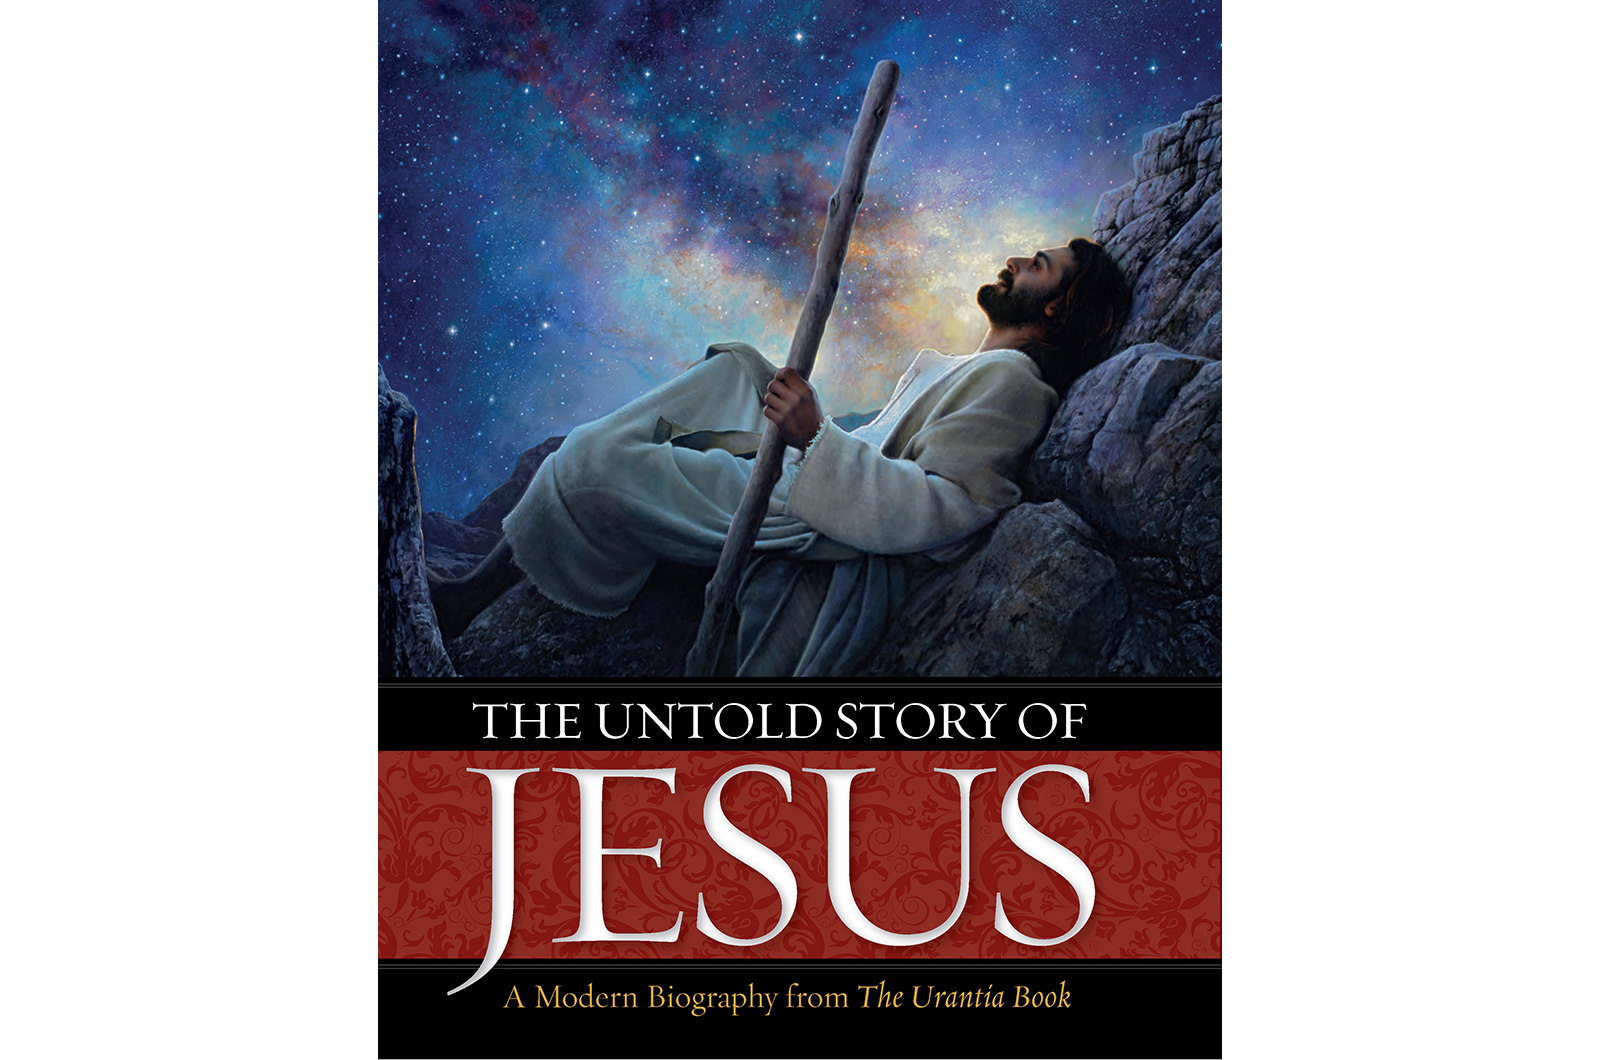 The Untold Story of Jesus